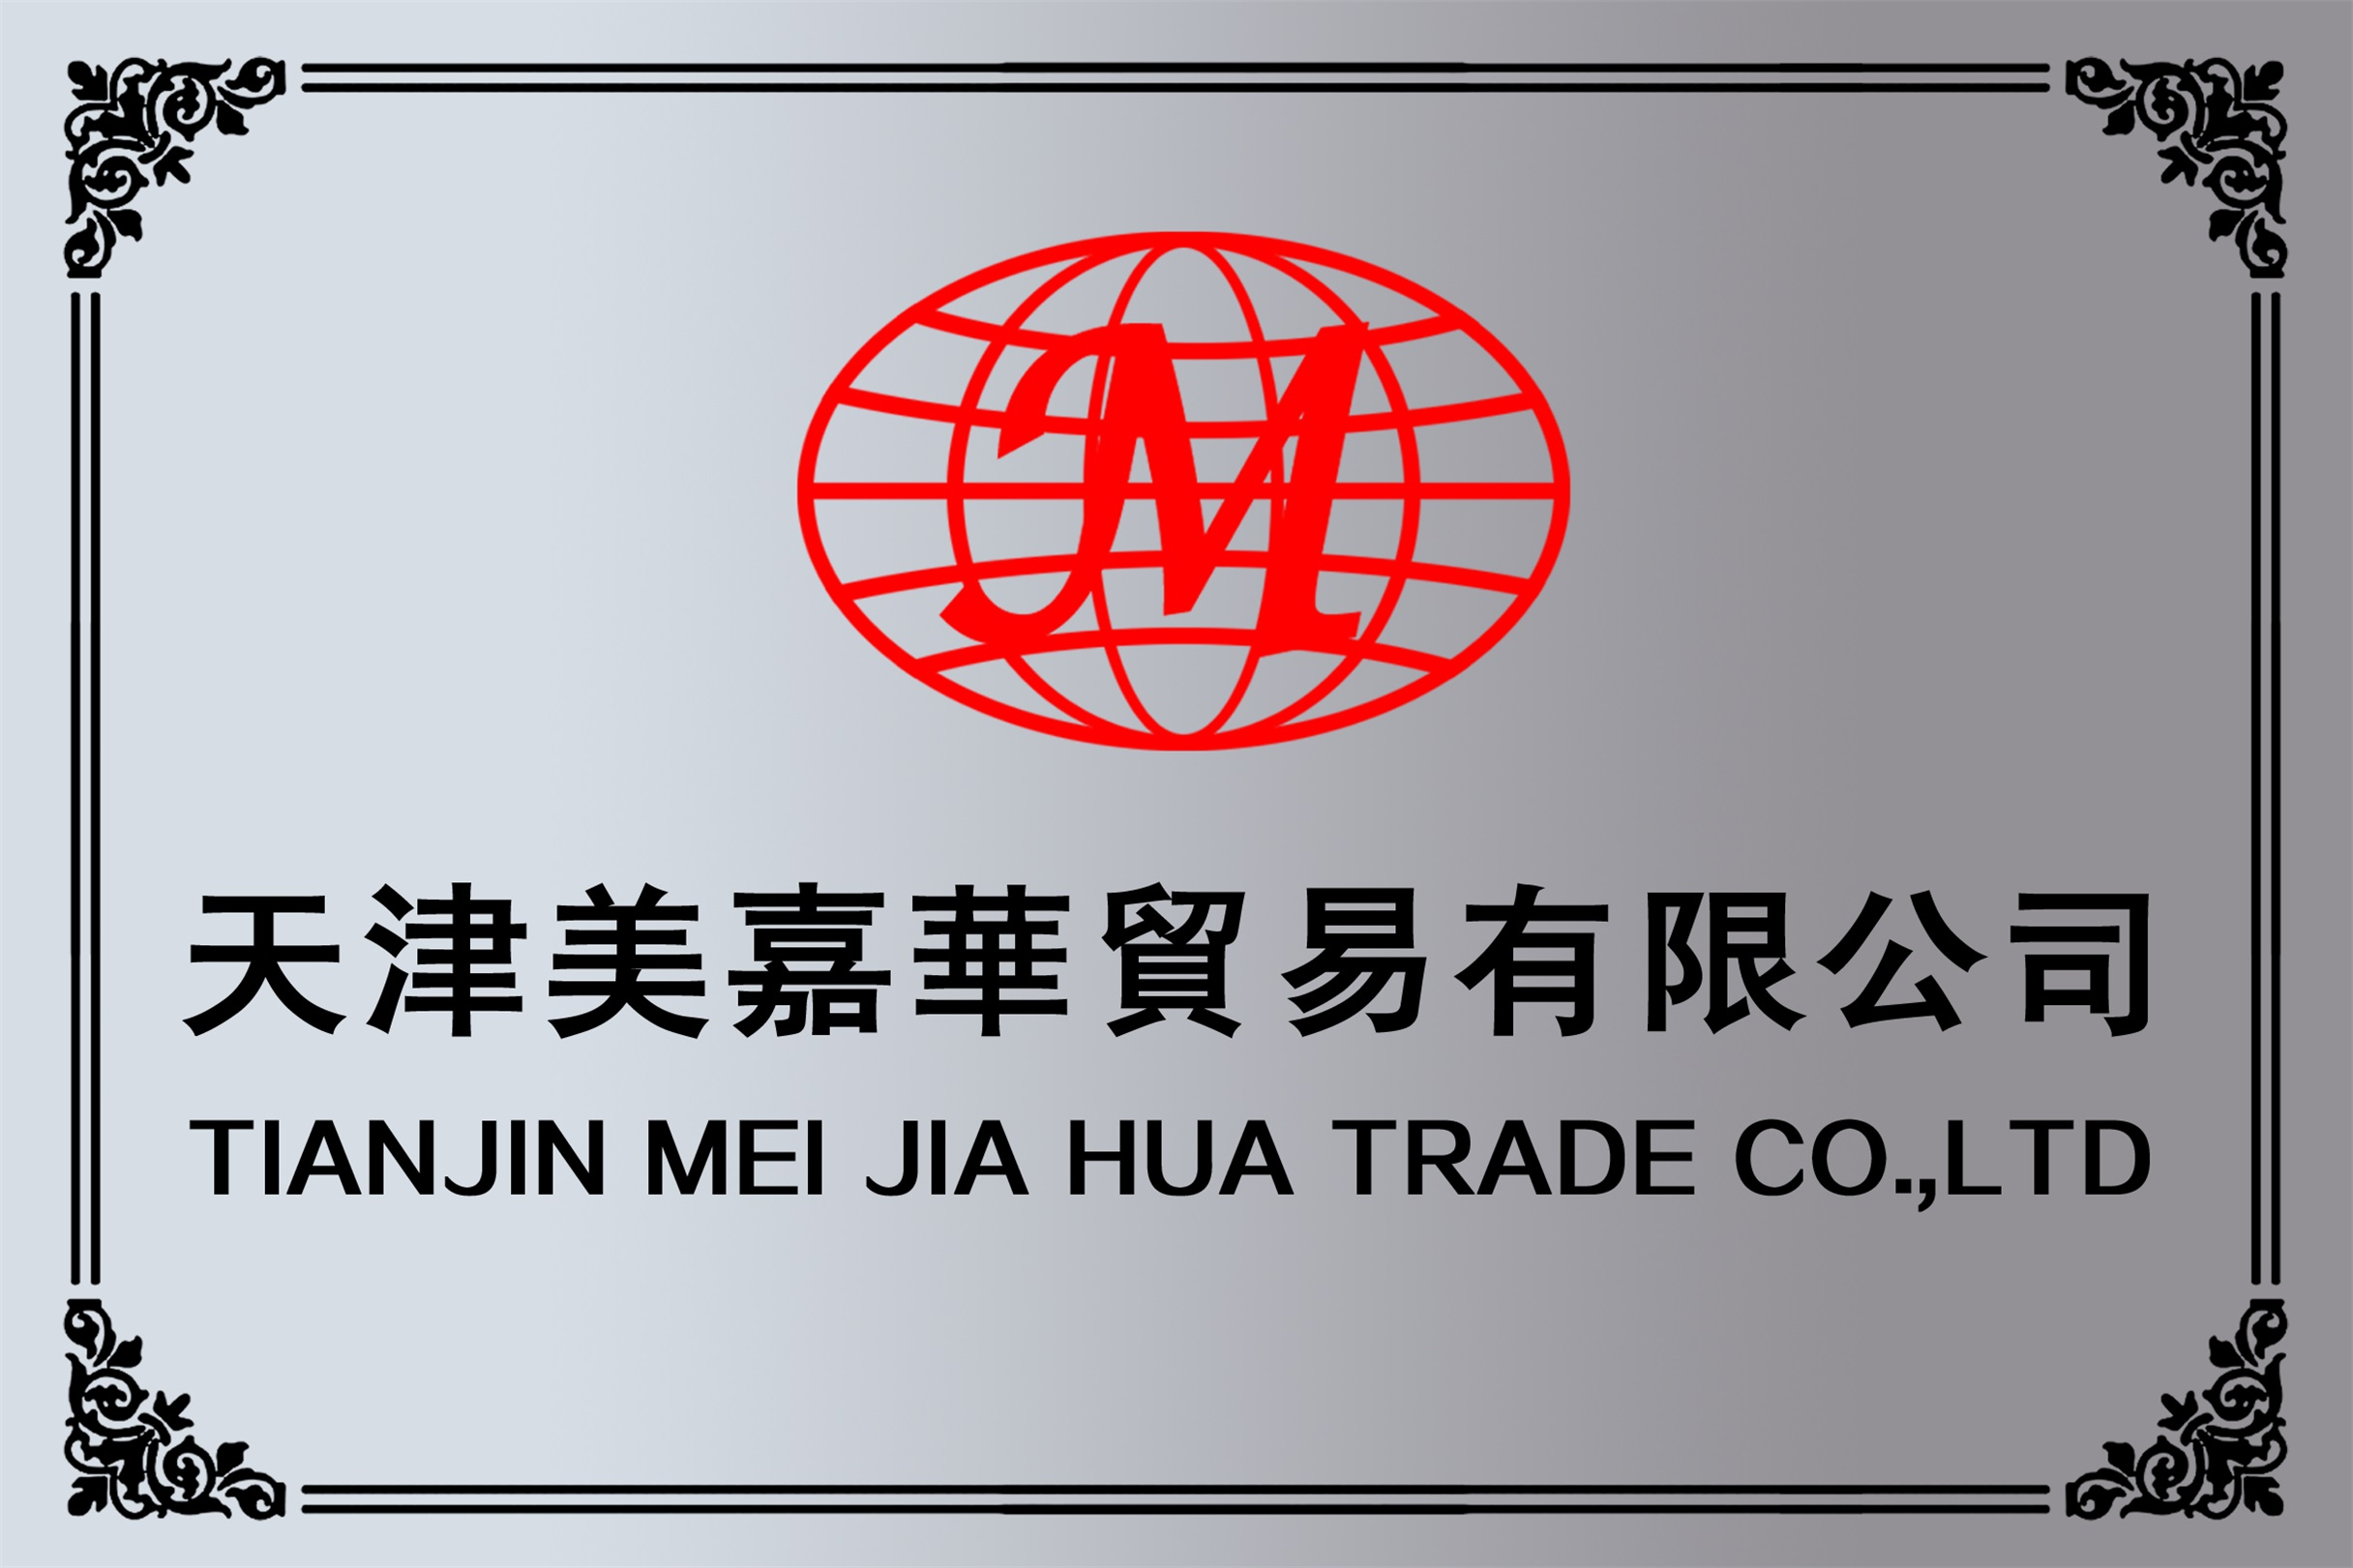 TIANJIN MEIJIAHUA TRADE CO.,LTD